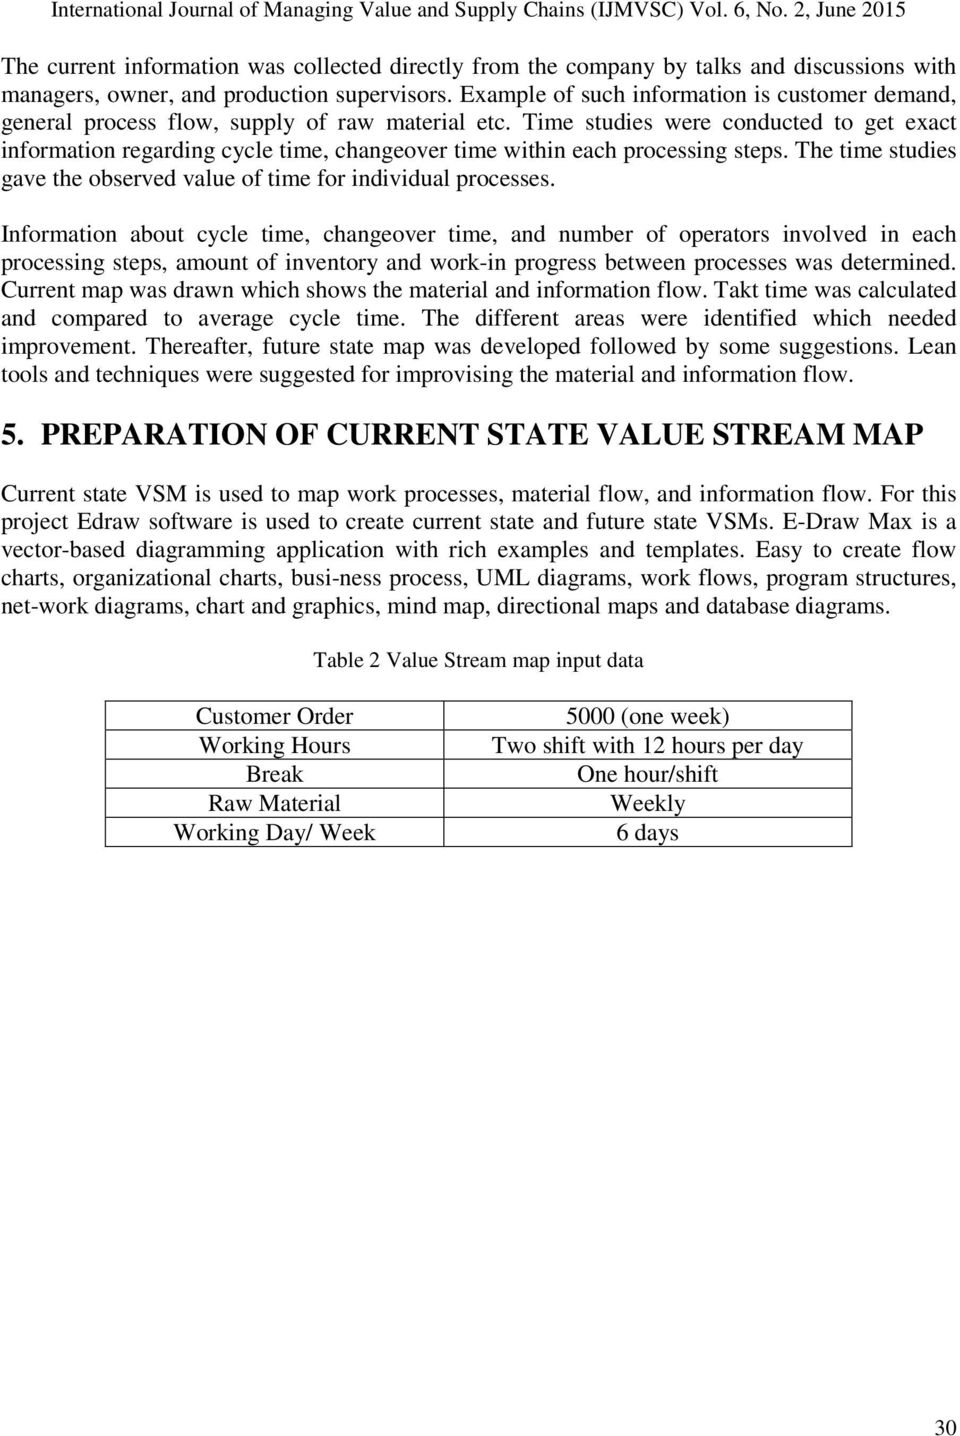 Reduction Of Work In Process Inventory And Production Lead Time A Flow Diagram Vs Value Stream Map Studies Were Conducted To Get Exact Information Regarding Cycle Changeover Within Each 5 Figure 2 Current State